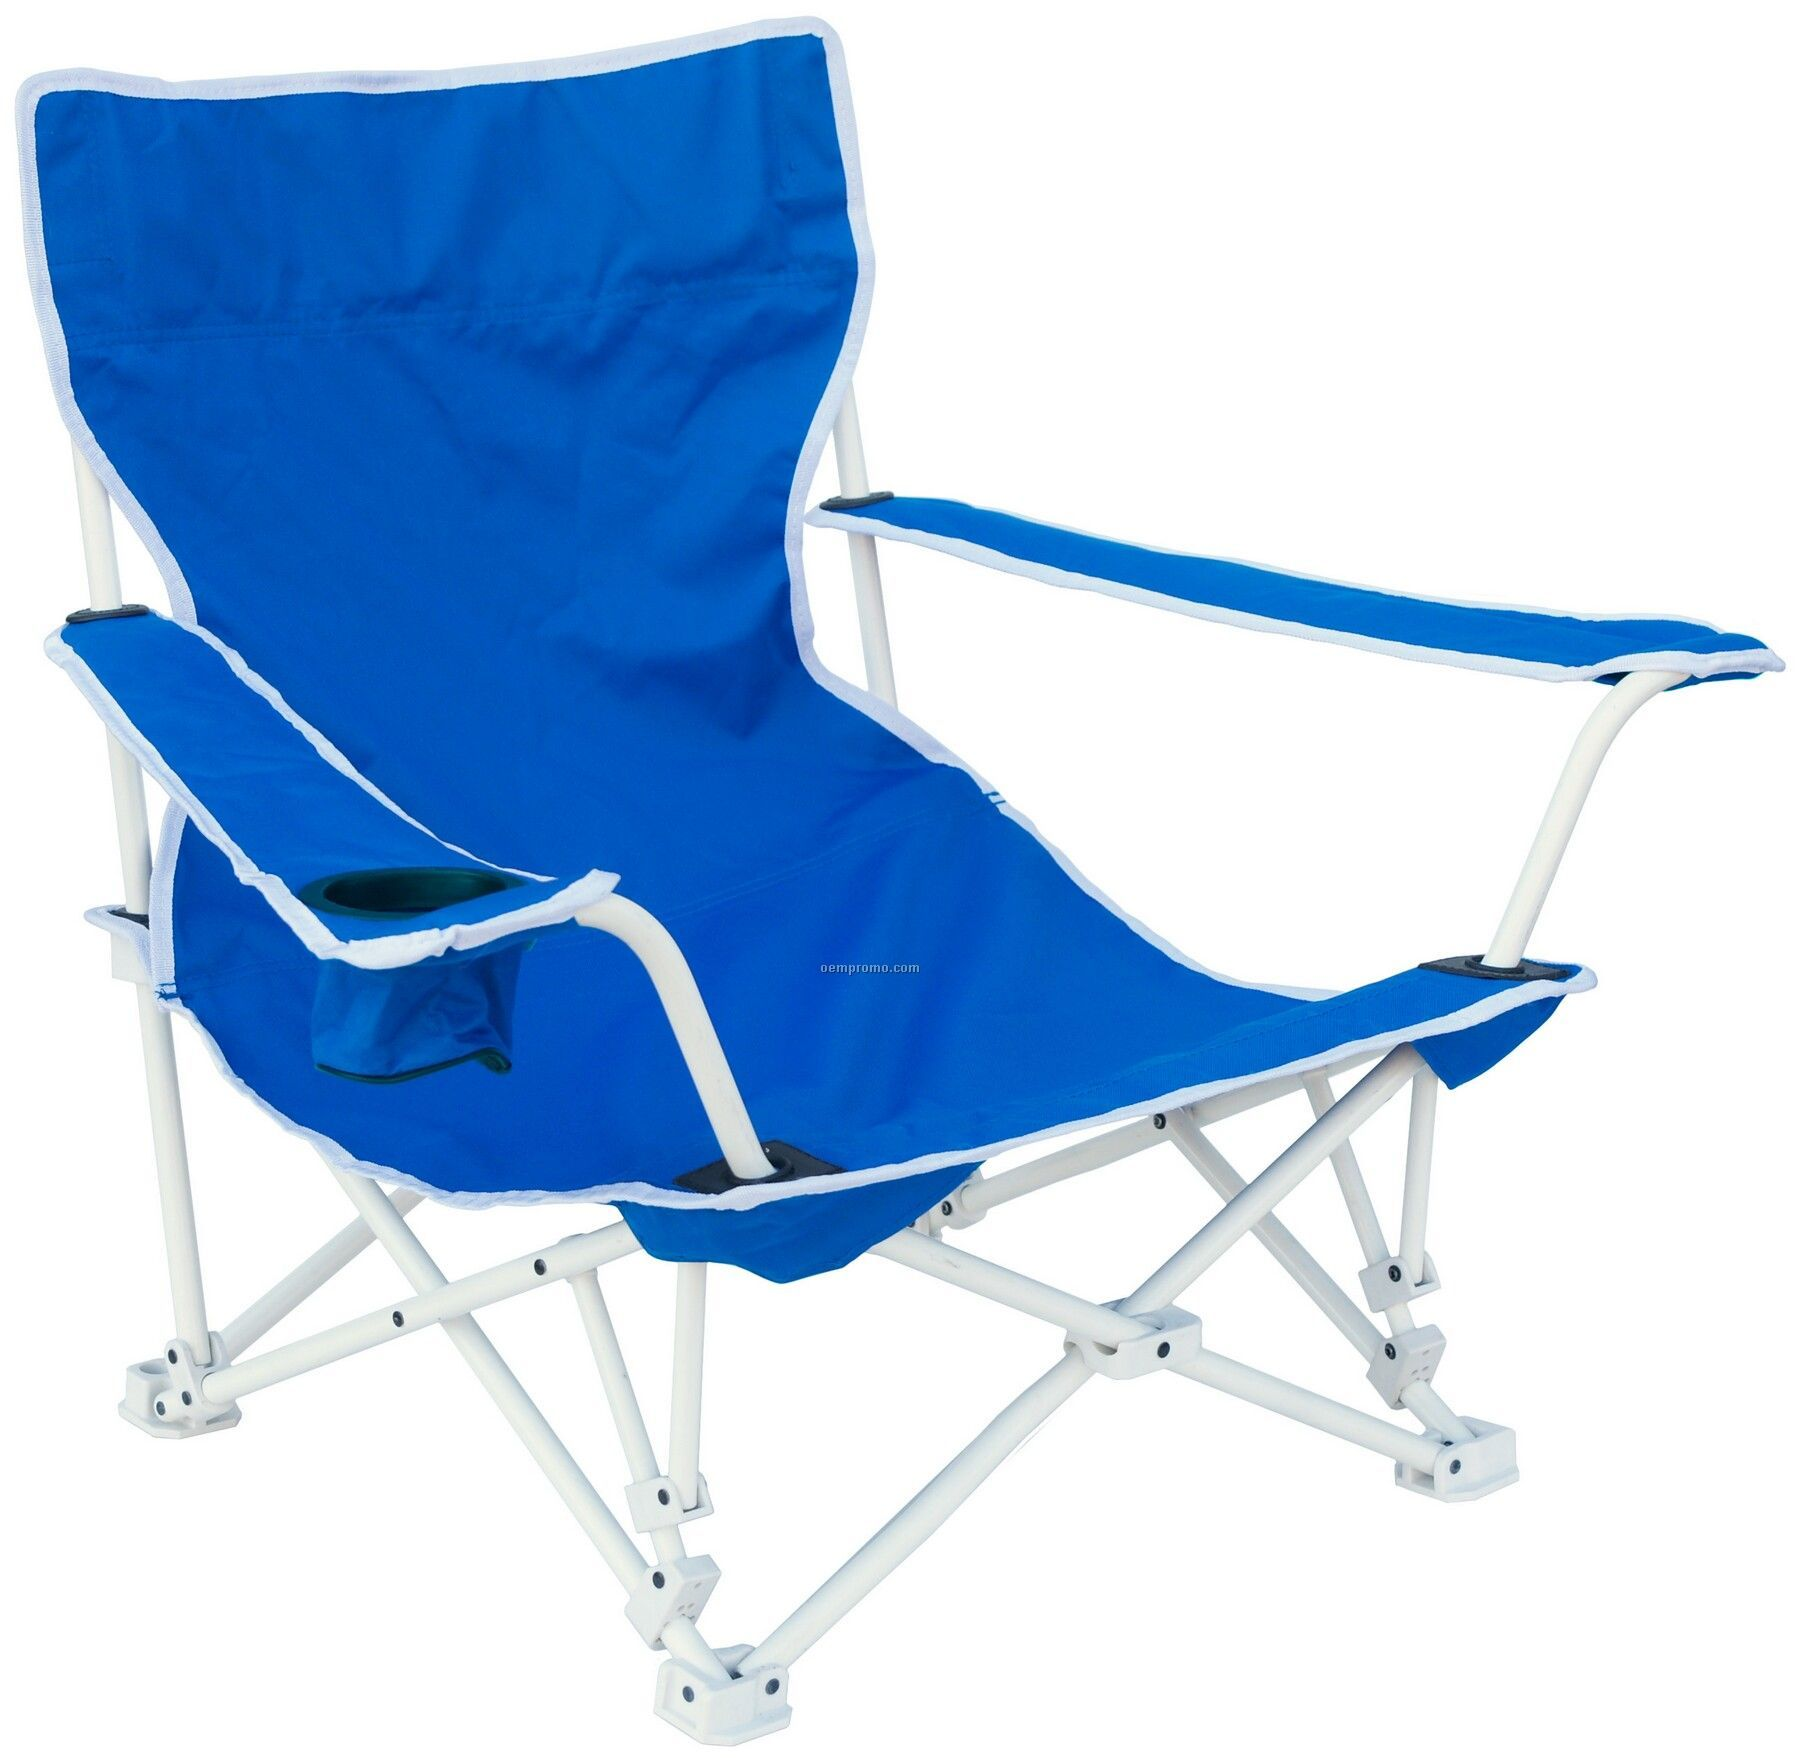 Direct Import Deluxe Folding Beach Chair With Carry Bag China Wholesale Dire